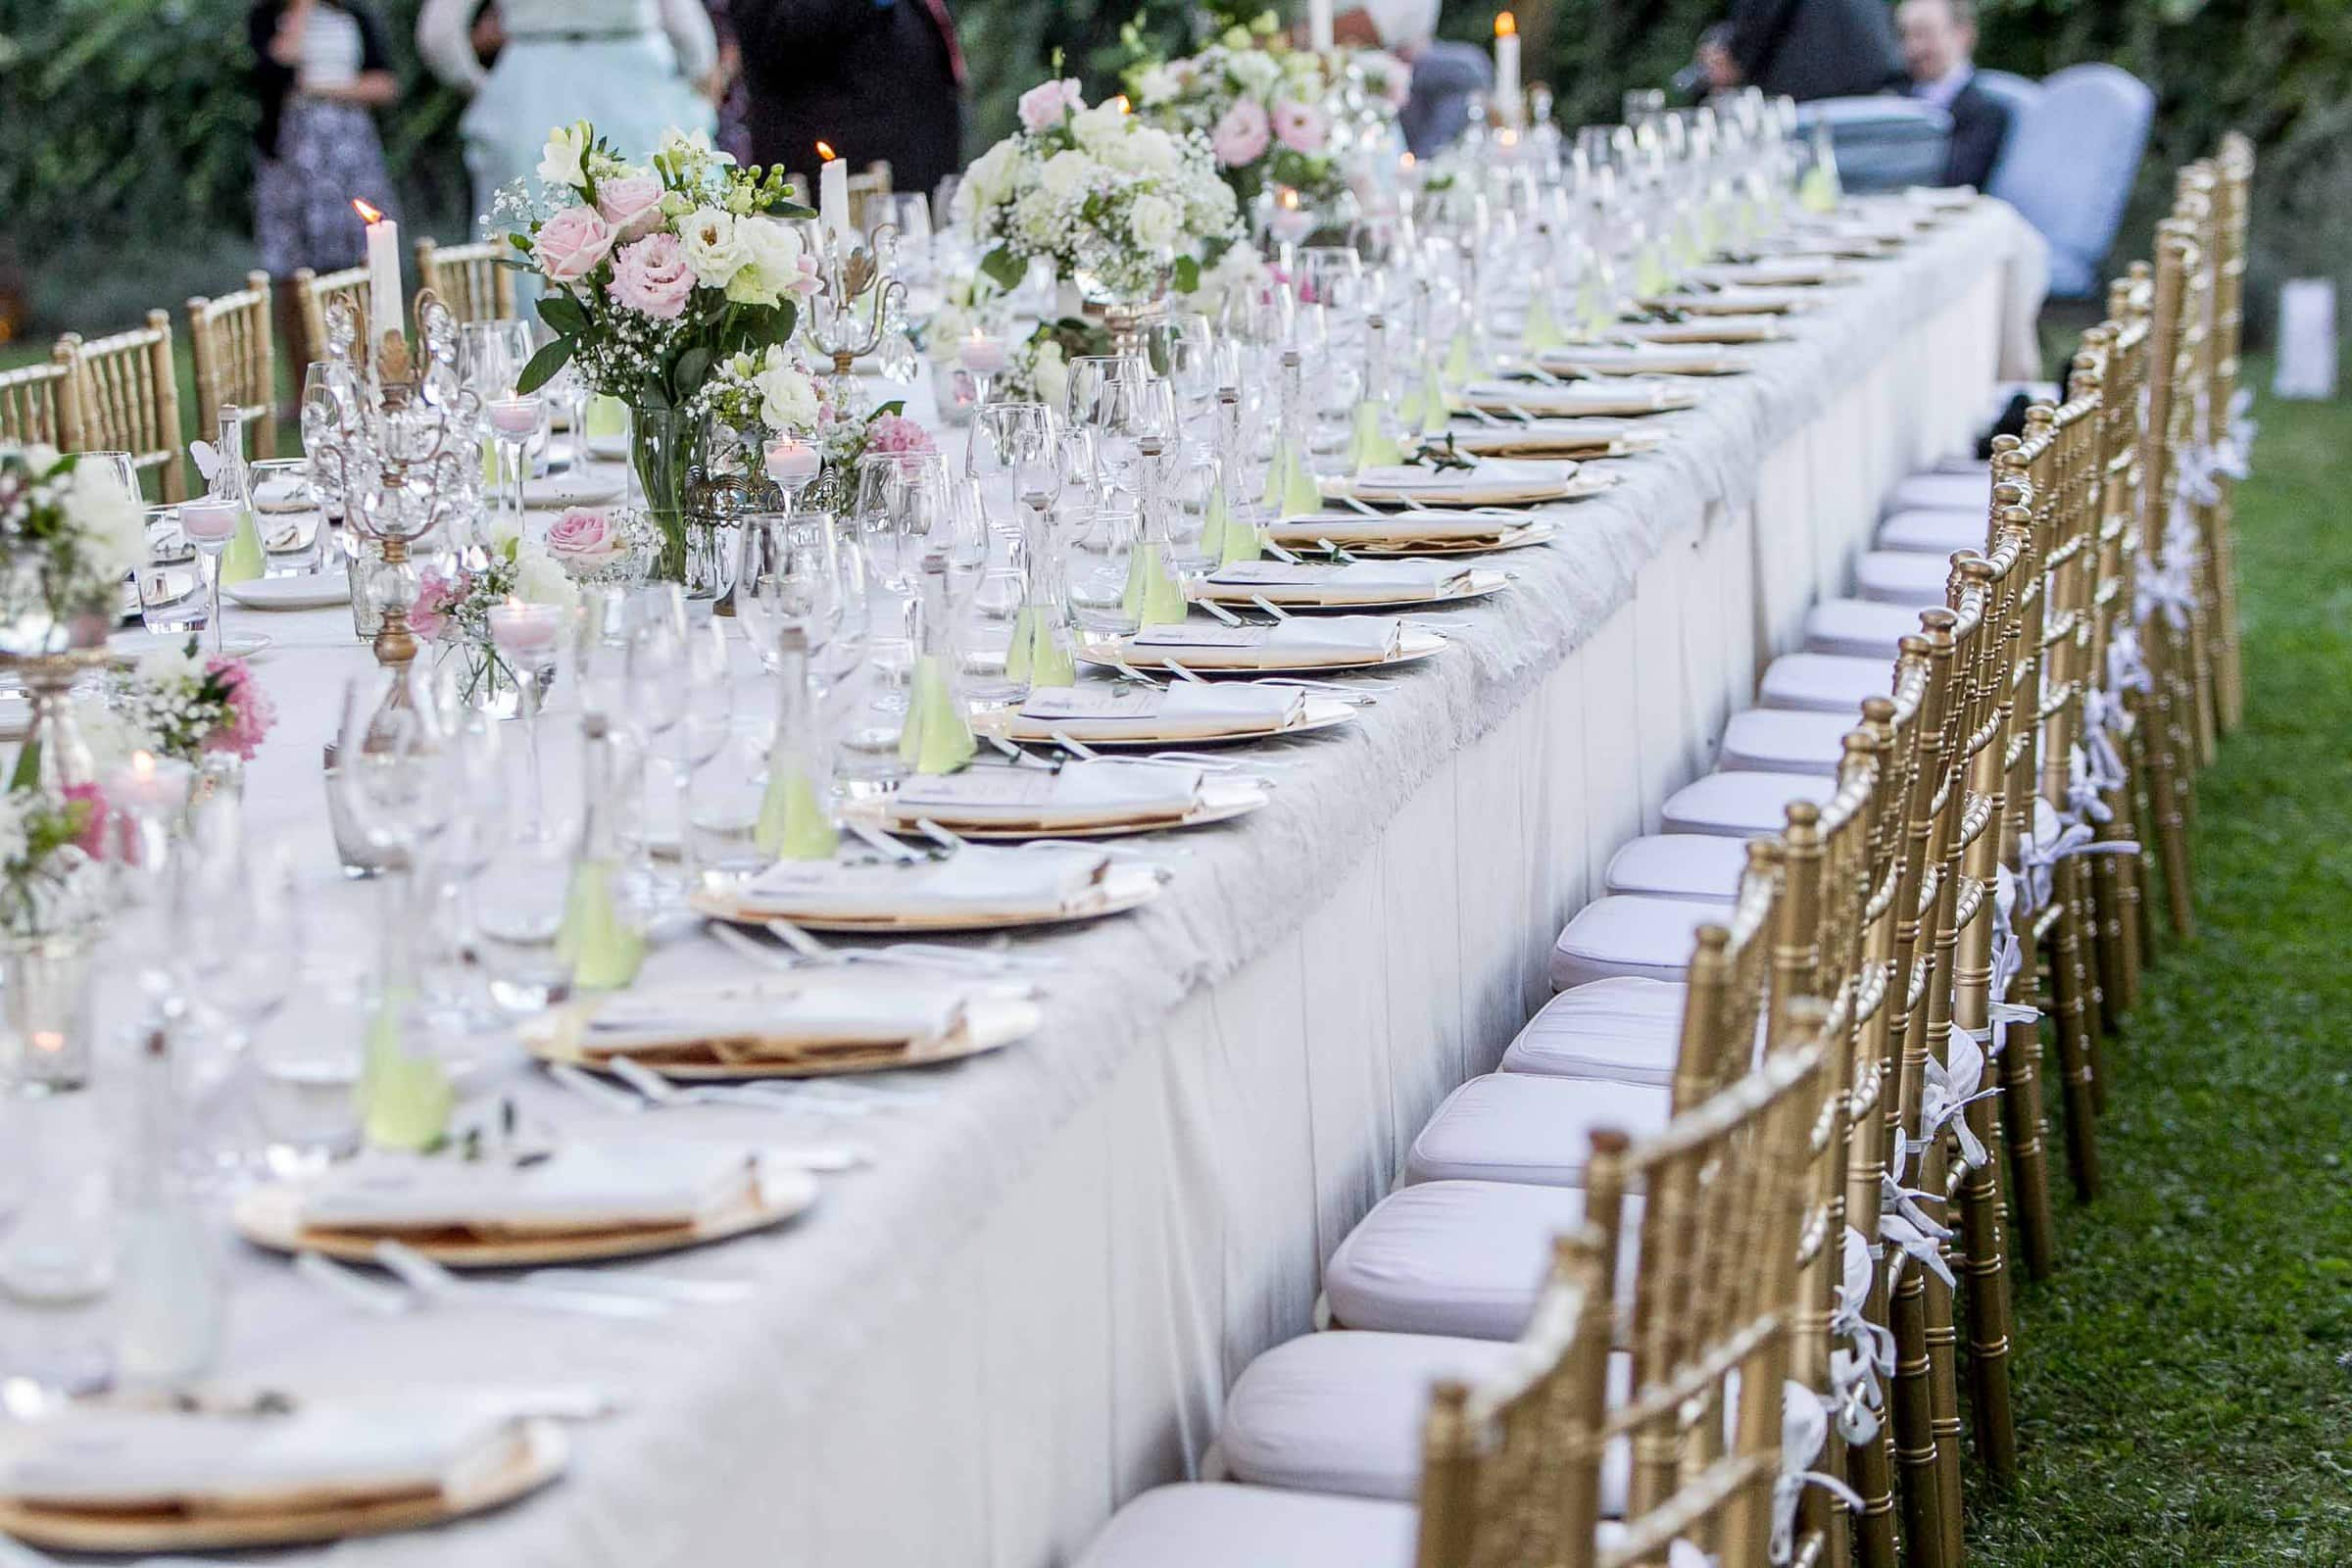 Gorgeous reception table from a Villa Tre Grazie wedding in Umbria near Todi, Italy.